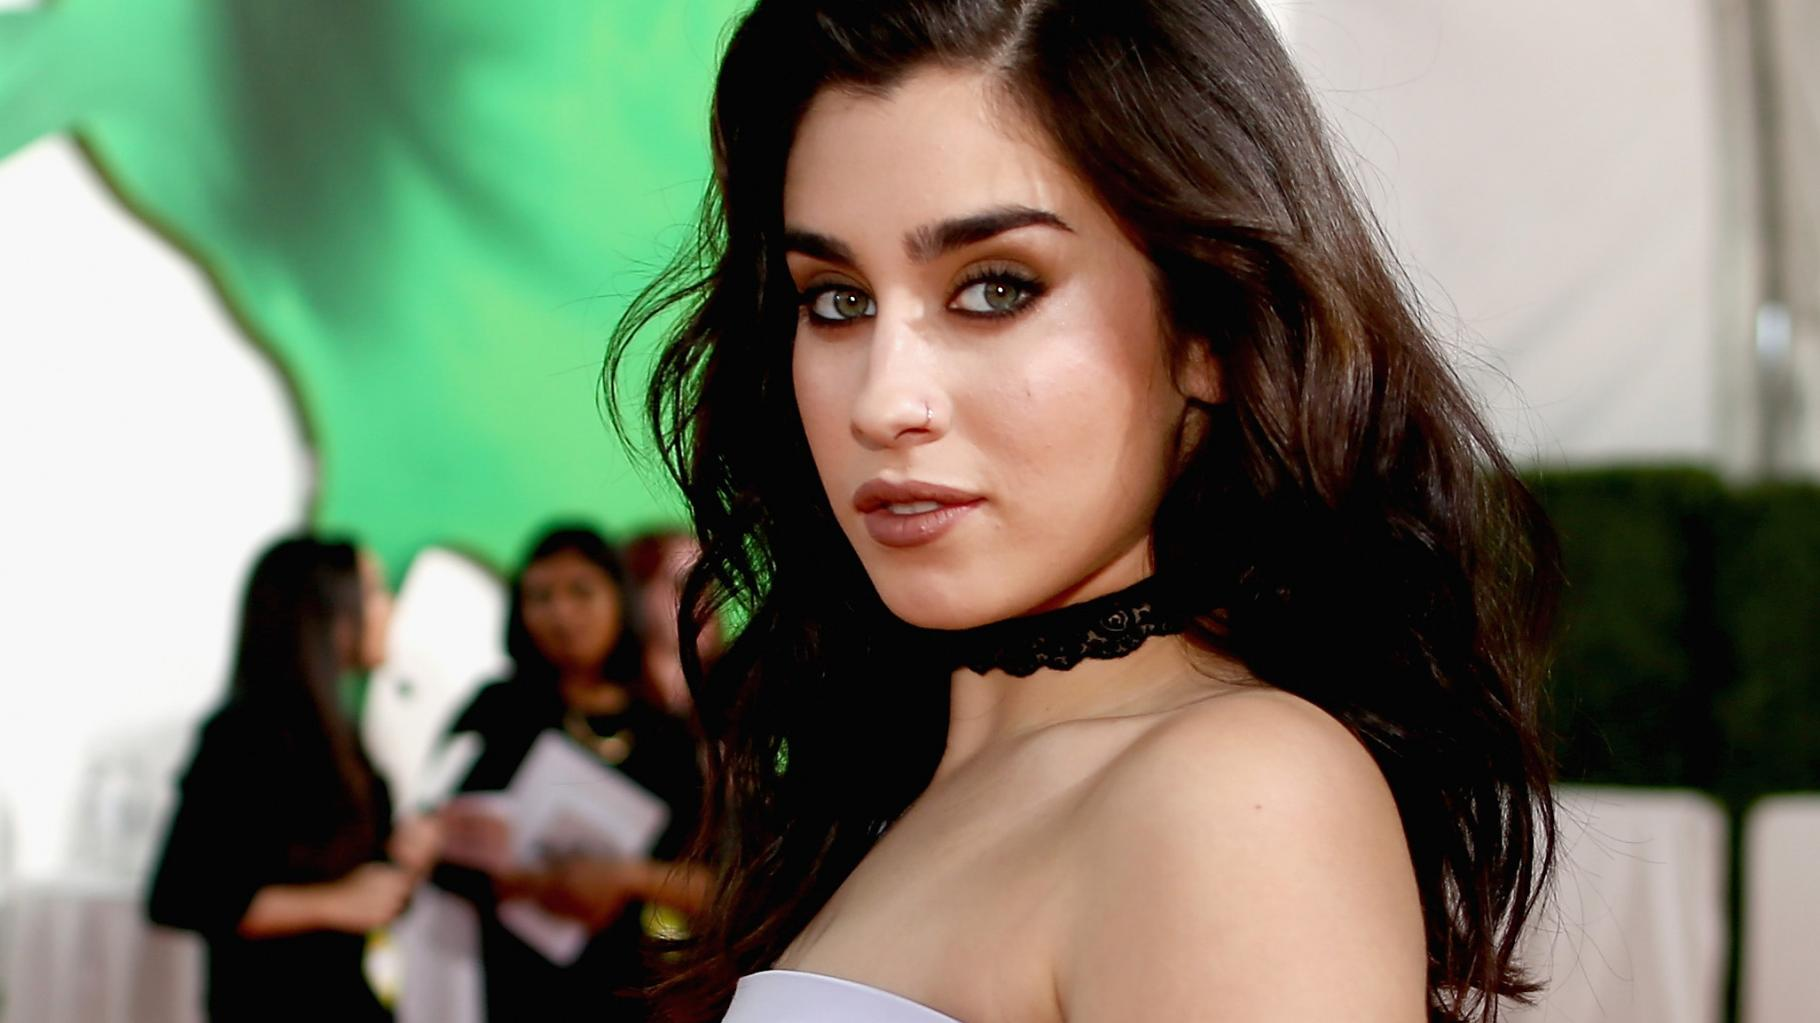 Fifth Harmony's Lauren Jauregui Comes Out as Bisexual, Stands Up to Trump Supporters' 'Hatred'